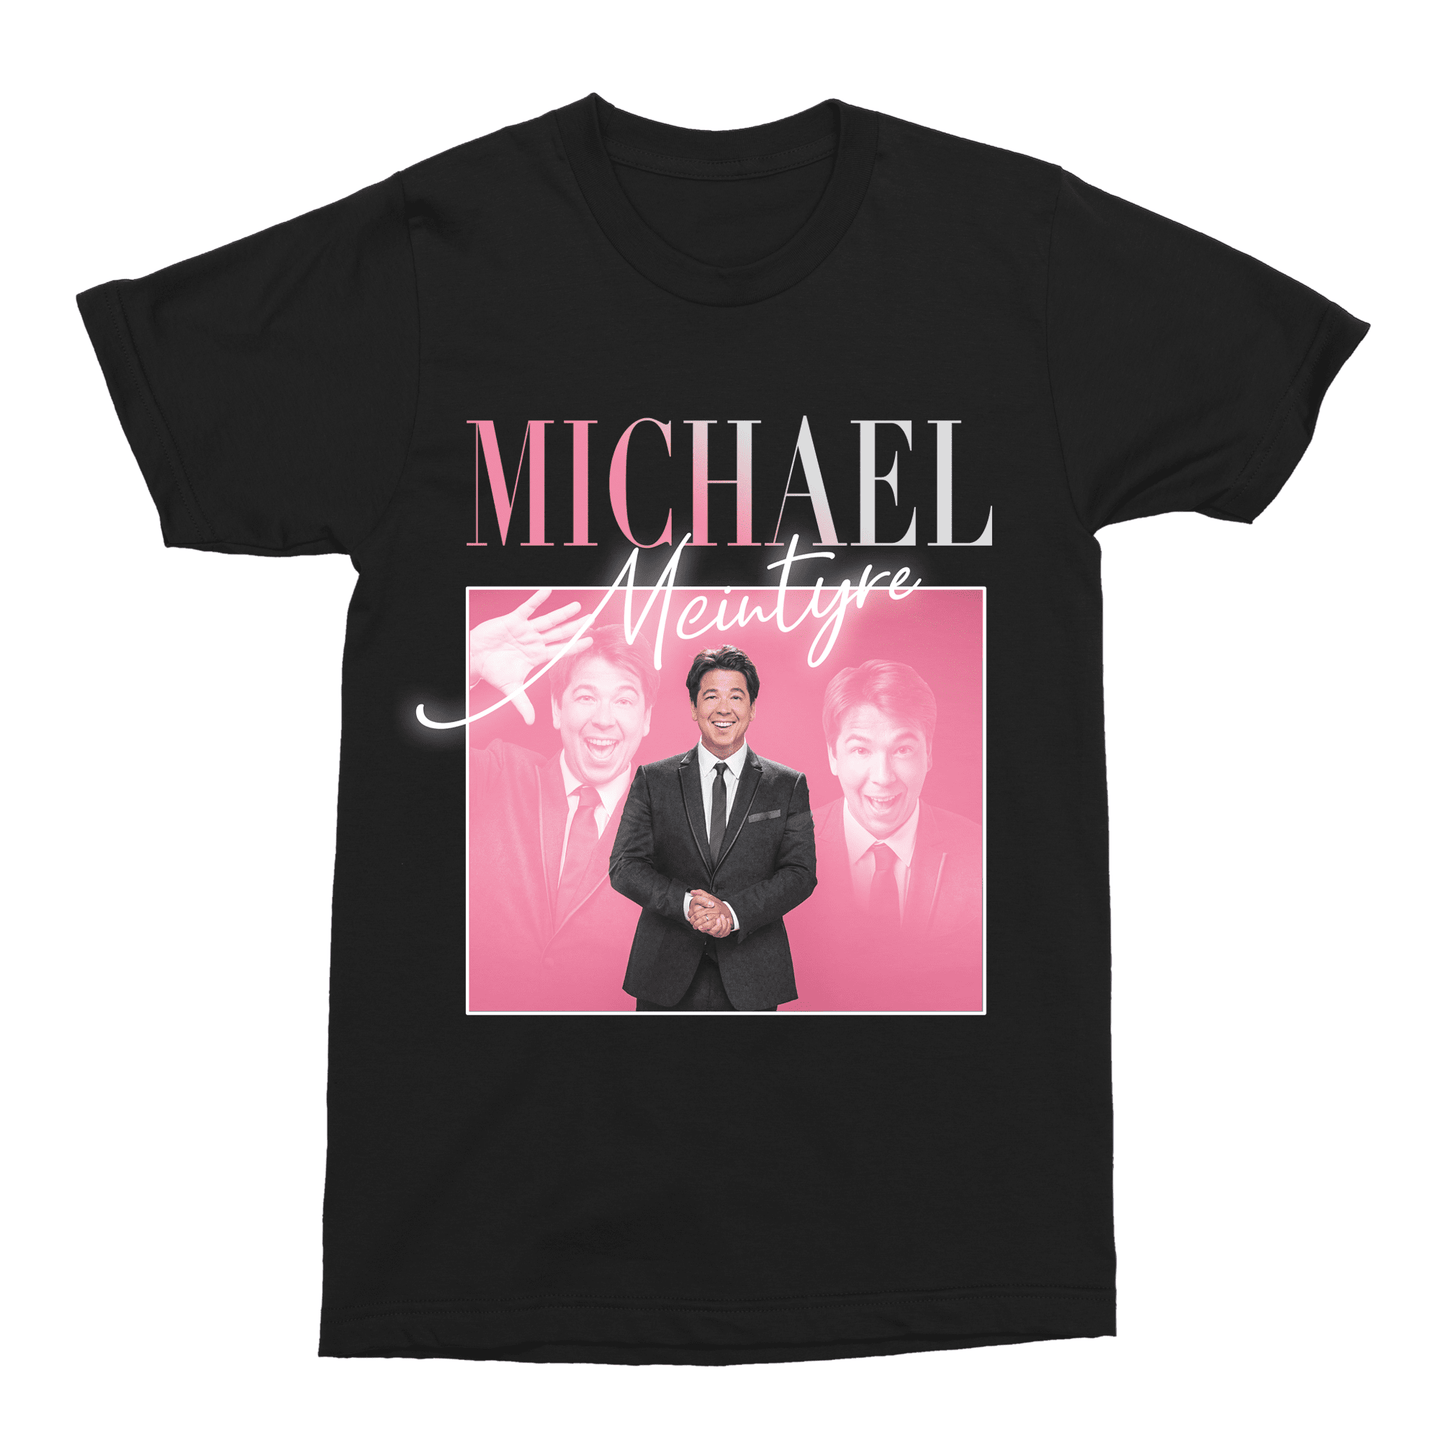 Michael McIntyre Unisex Vintage Throwback T-Shirt - Timeless Tees